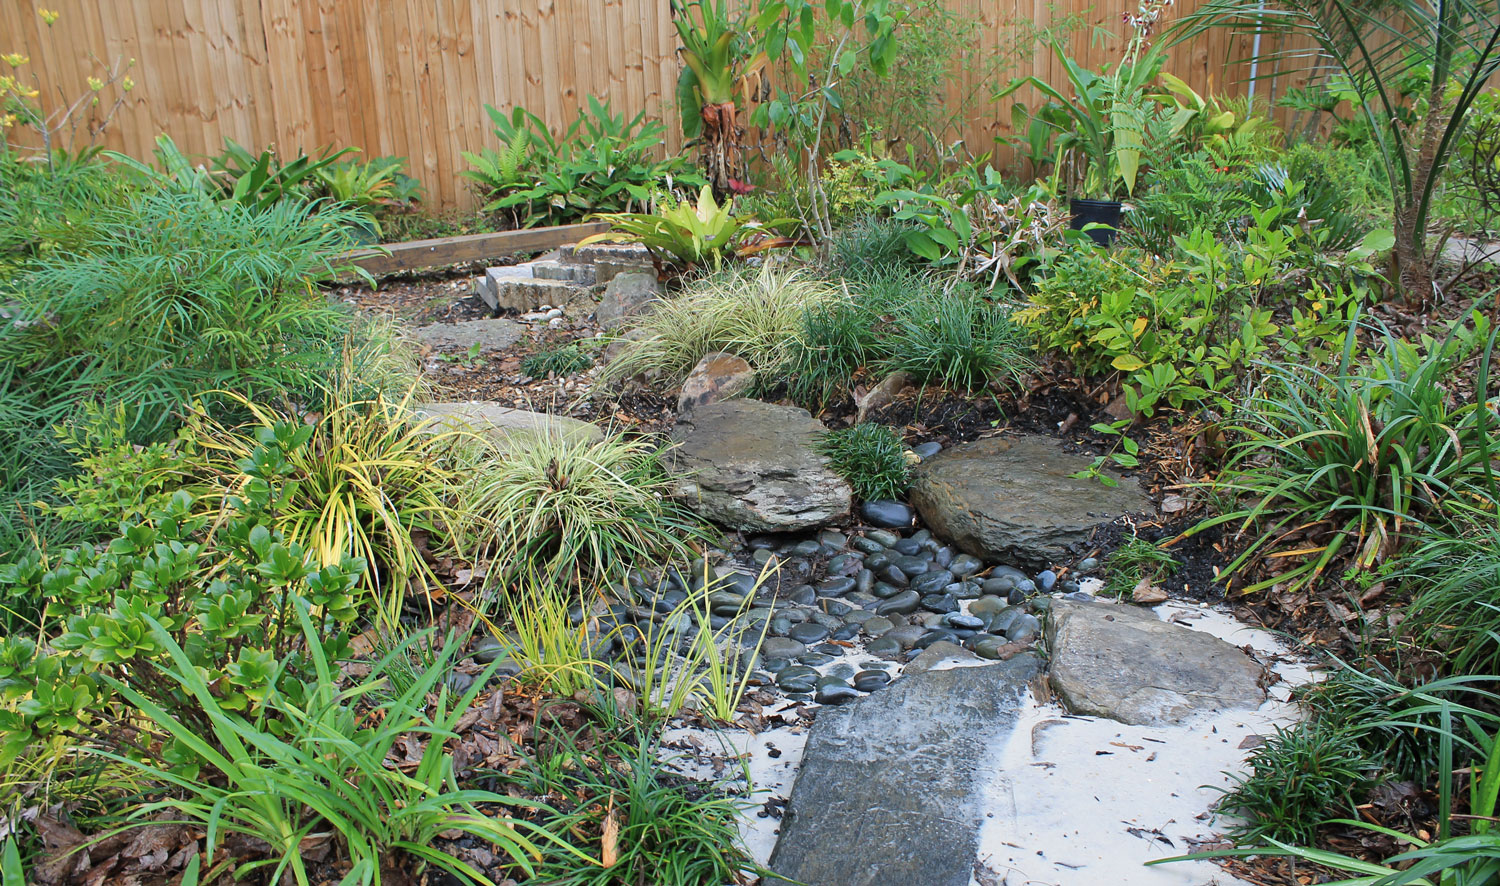 The rainforest garden how to design a dry creek bed 10 tips for Landscaping rocks and plants